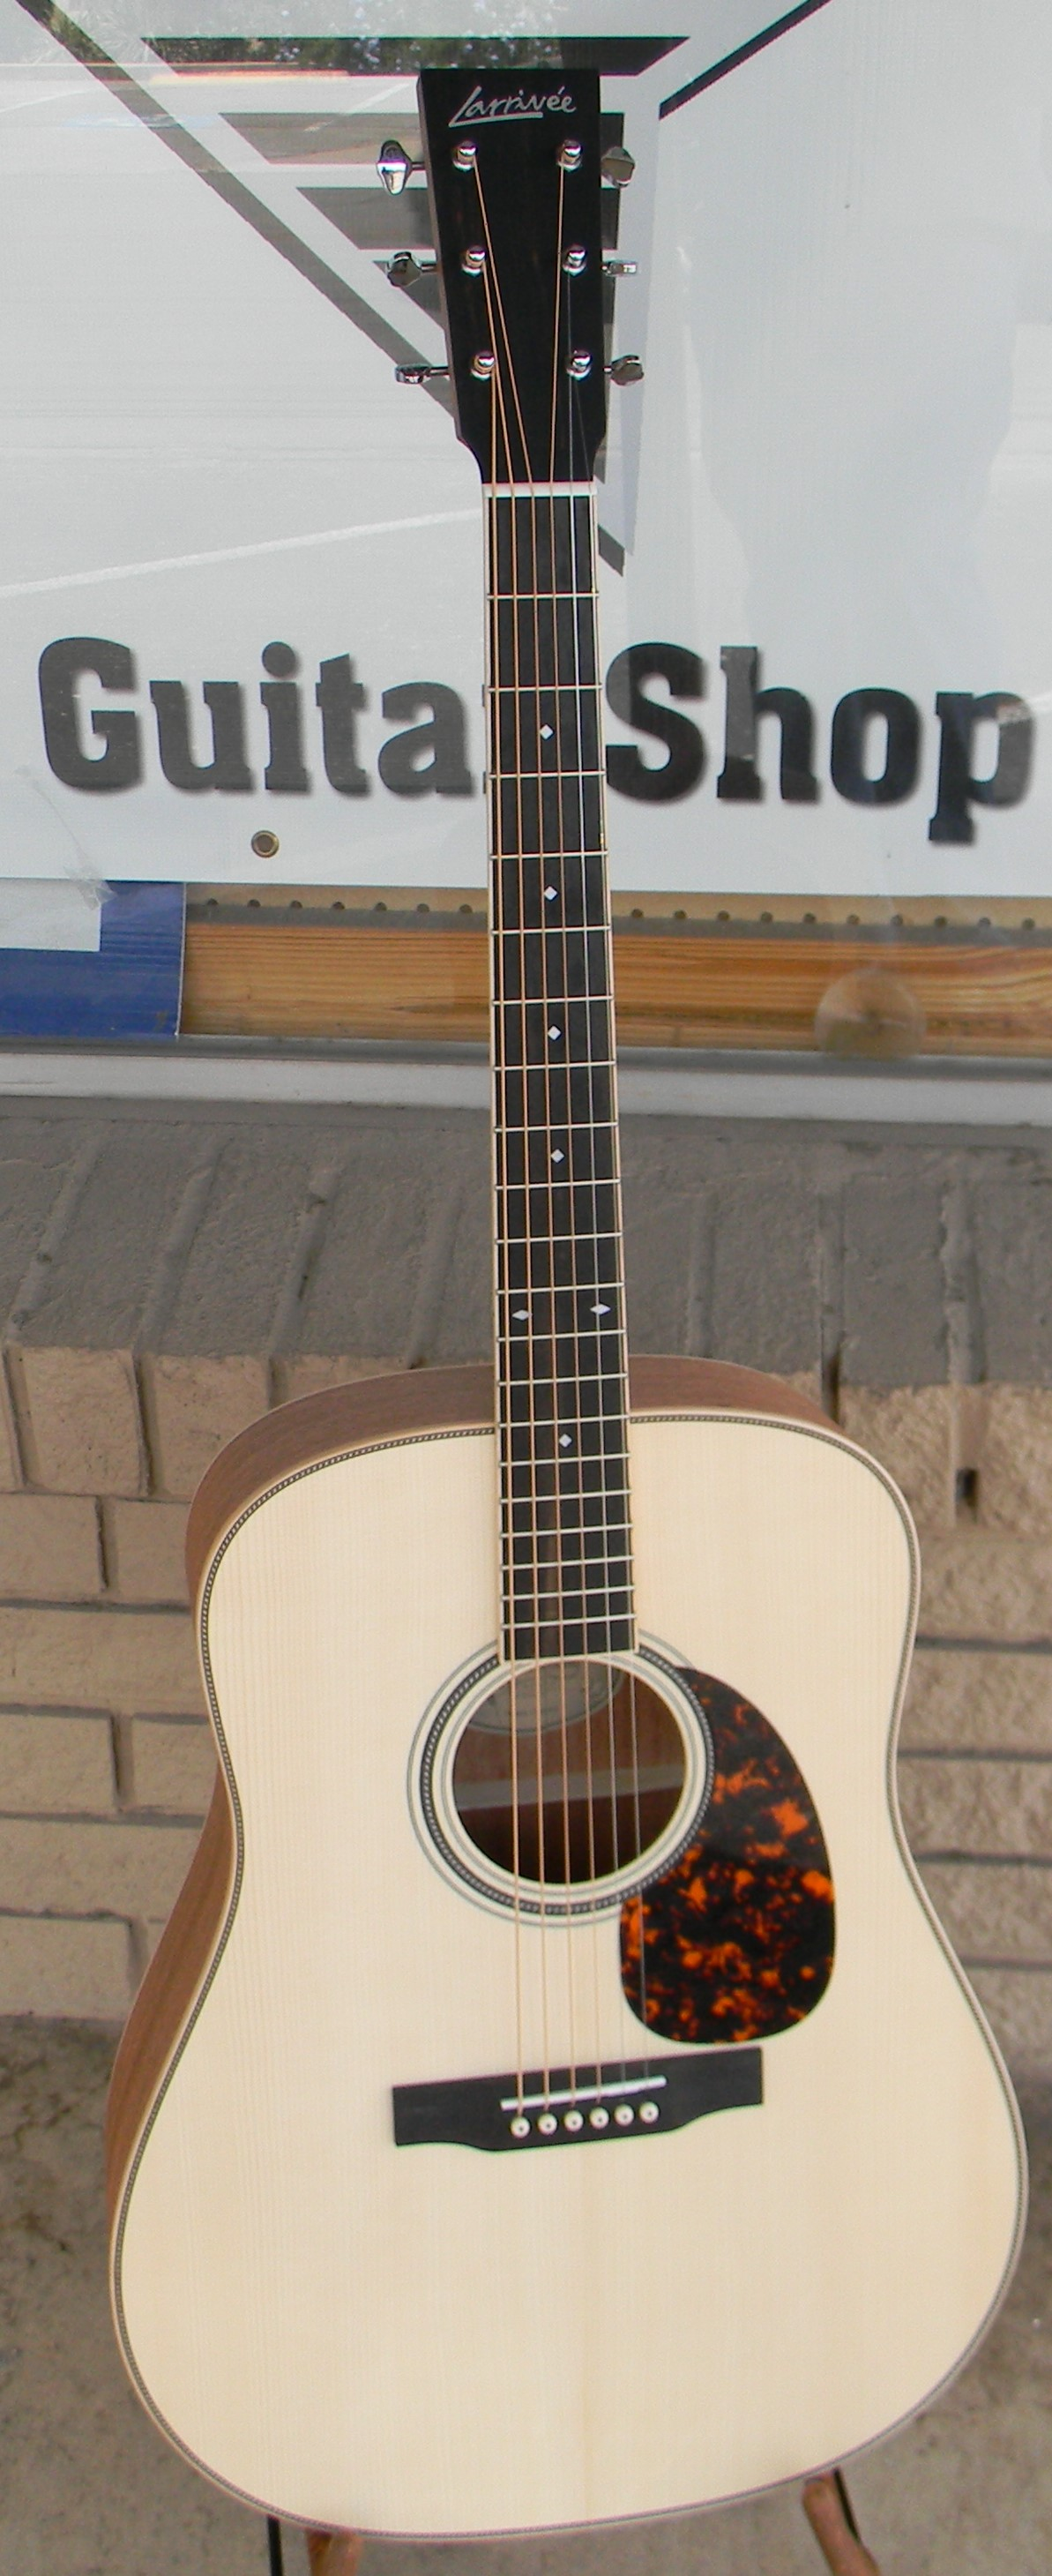 Larrivee d 40MH with Austrian spruce top. Scalloped bracing on this Austrian spruce top combined with premium mahogany back and sides make for a dreadnought with a huge. clear voice that will rival boutique and custom guitar guitars at 2-3 times the price. List: $2,048.00 SALE: $1,595.00